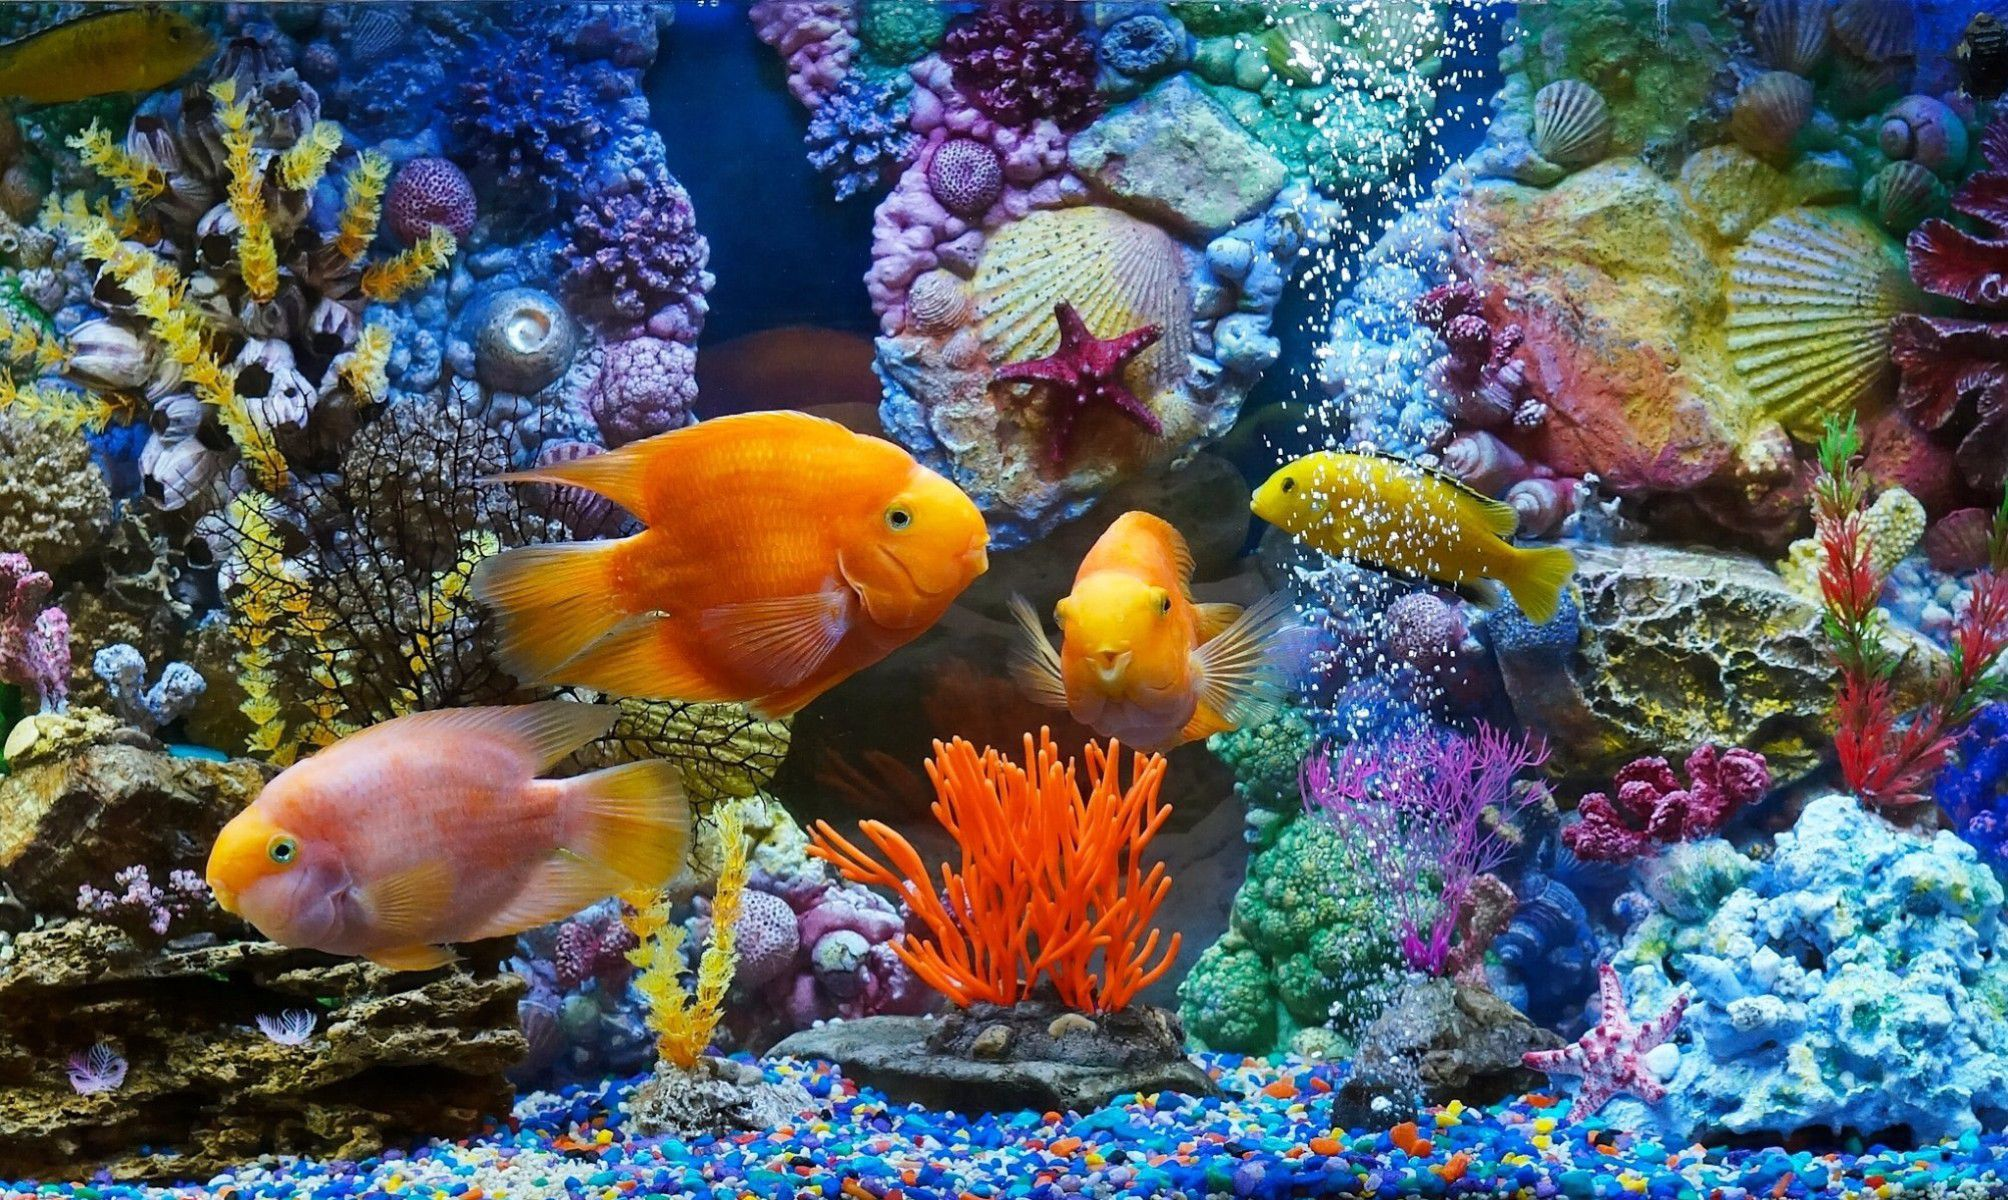 Aquarium Wallpaper Pack